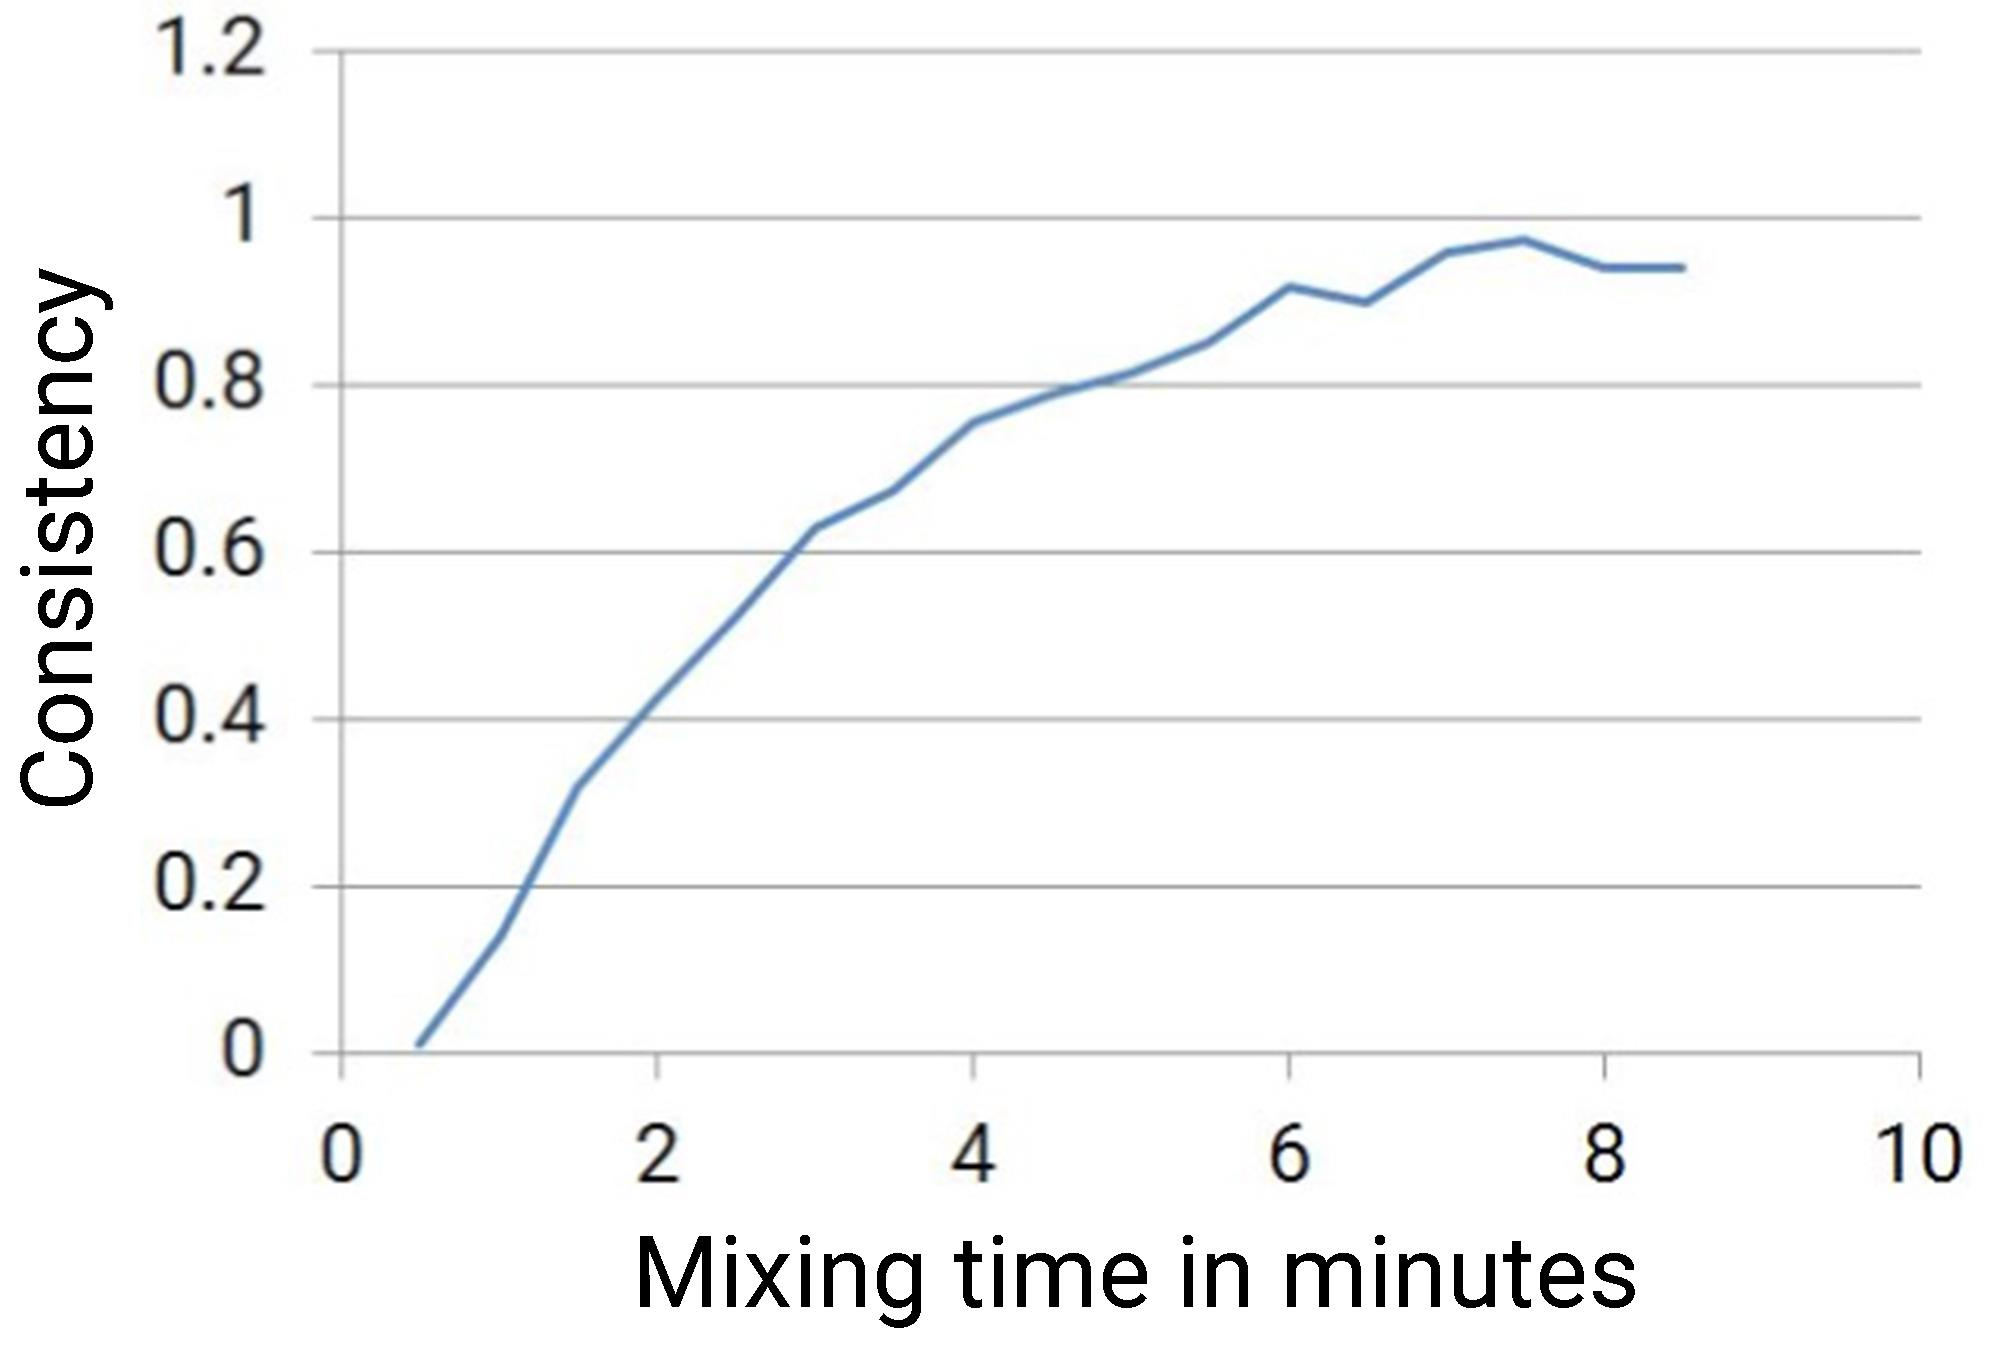 Consistency of formulation compared to mixing time